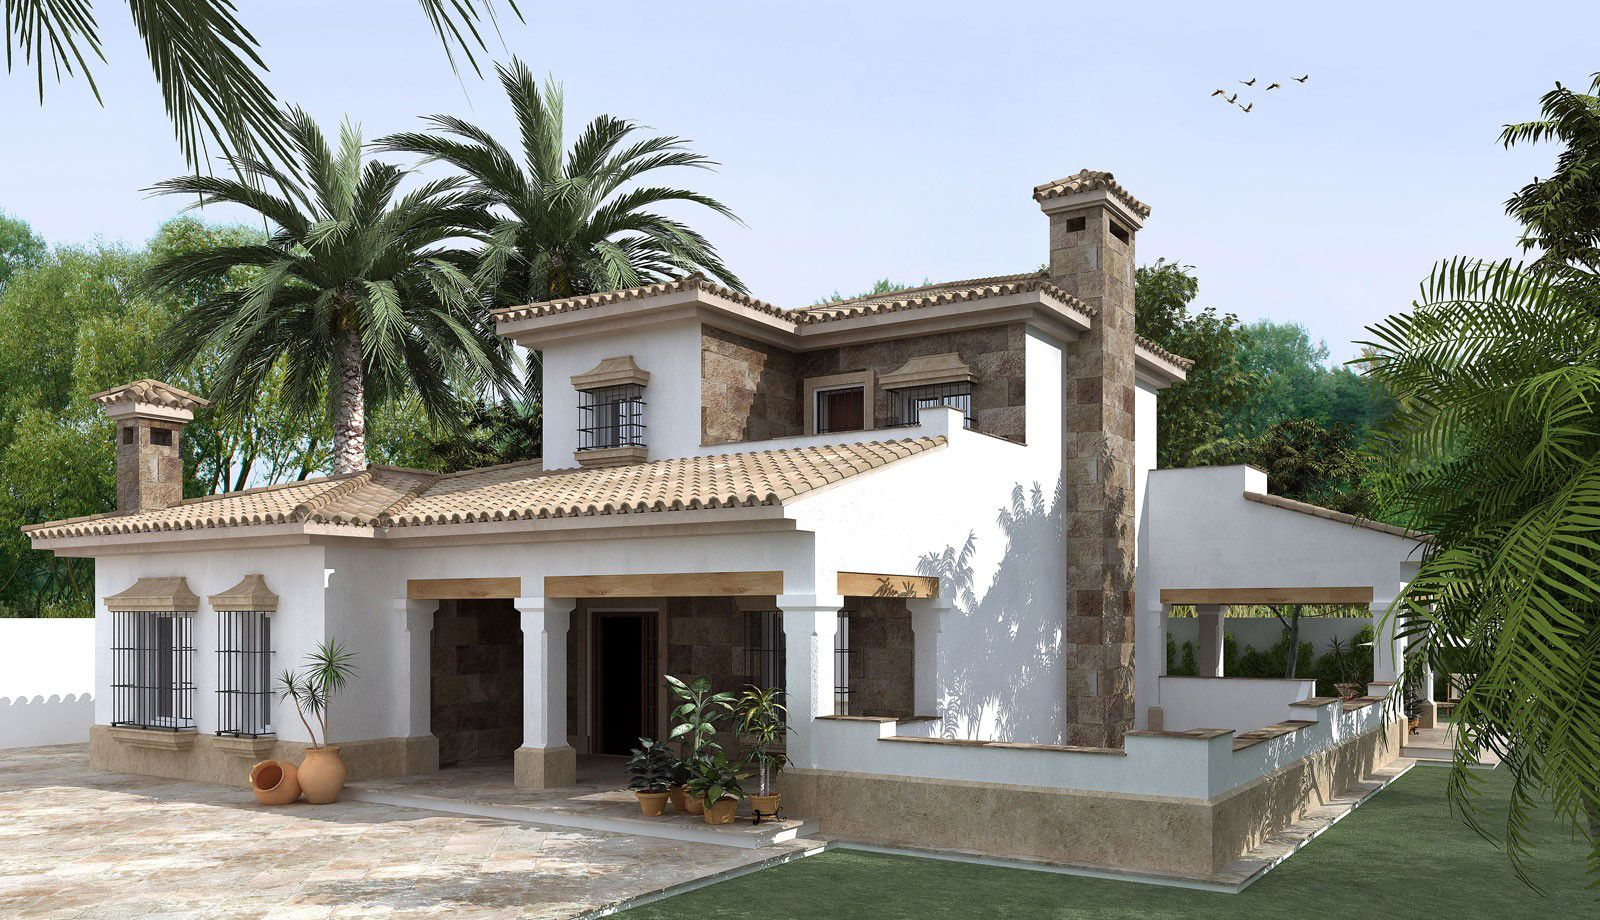 1000+ images about Spanish Style House on Pinterest - ^